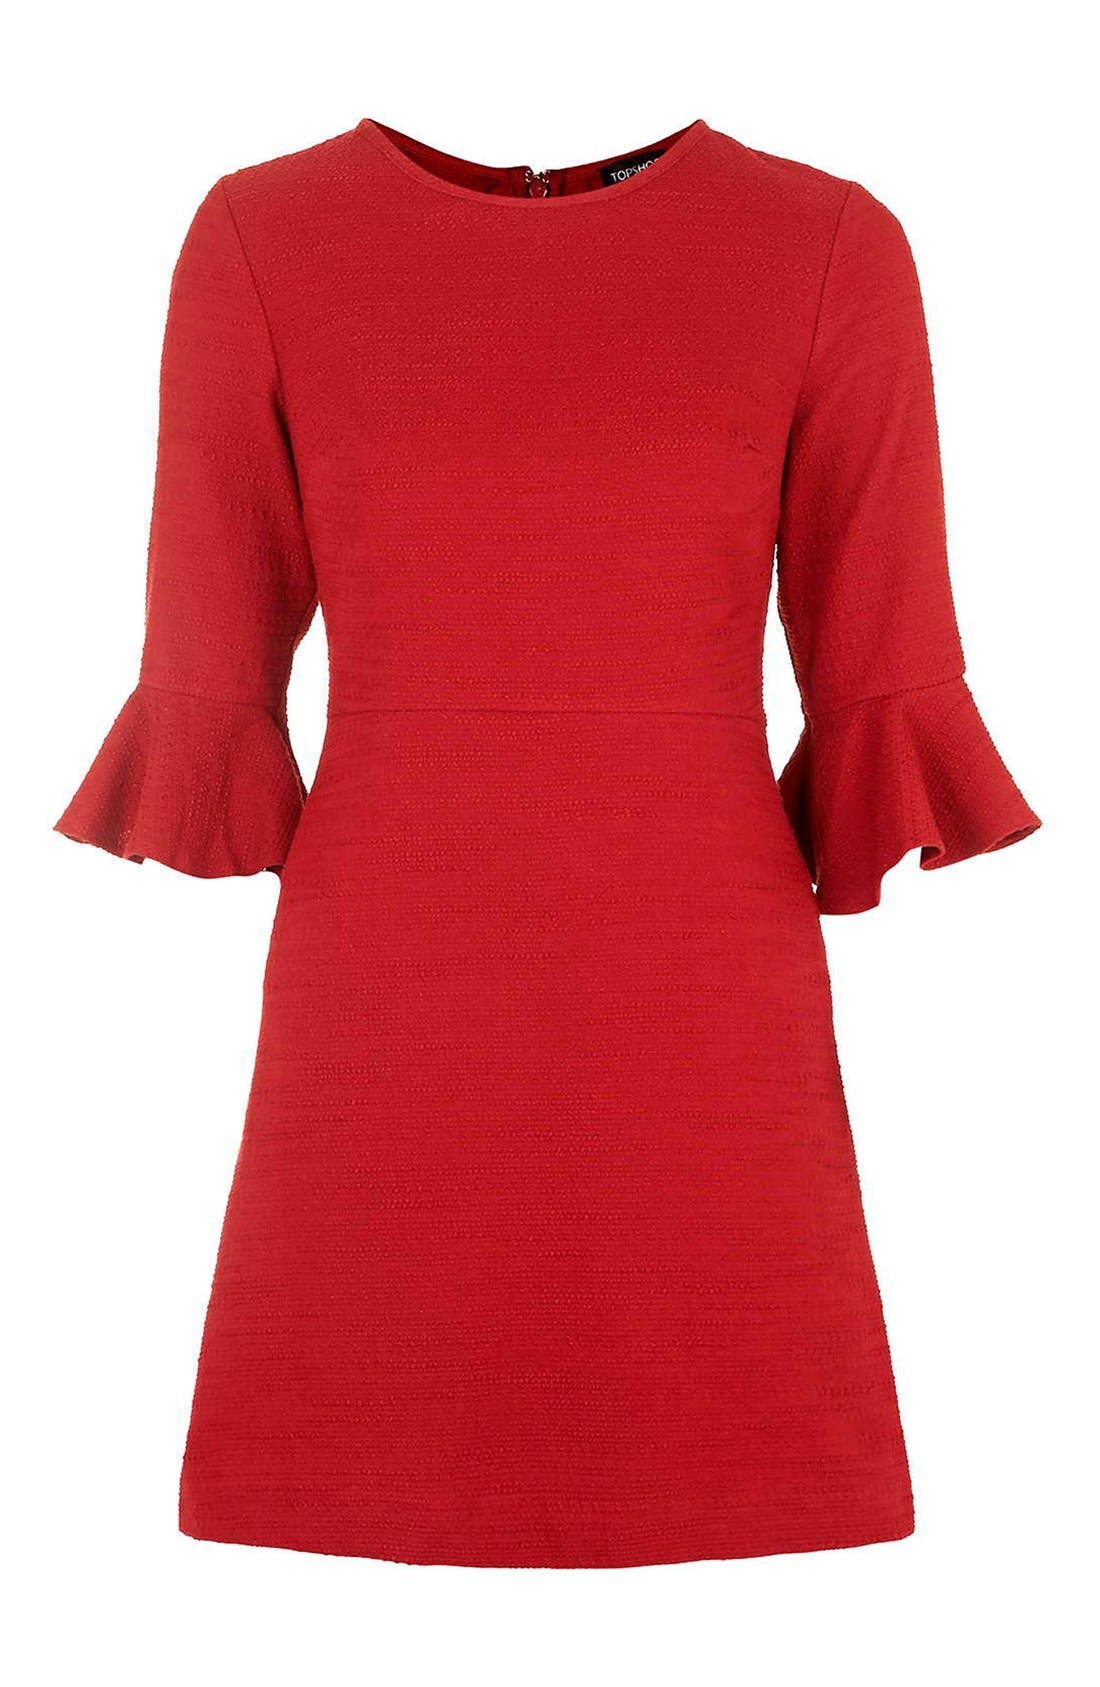 Alternate Image 3  - Topshop Fluted Sleeve Dress (Regular & Petite)